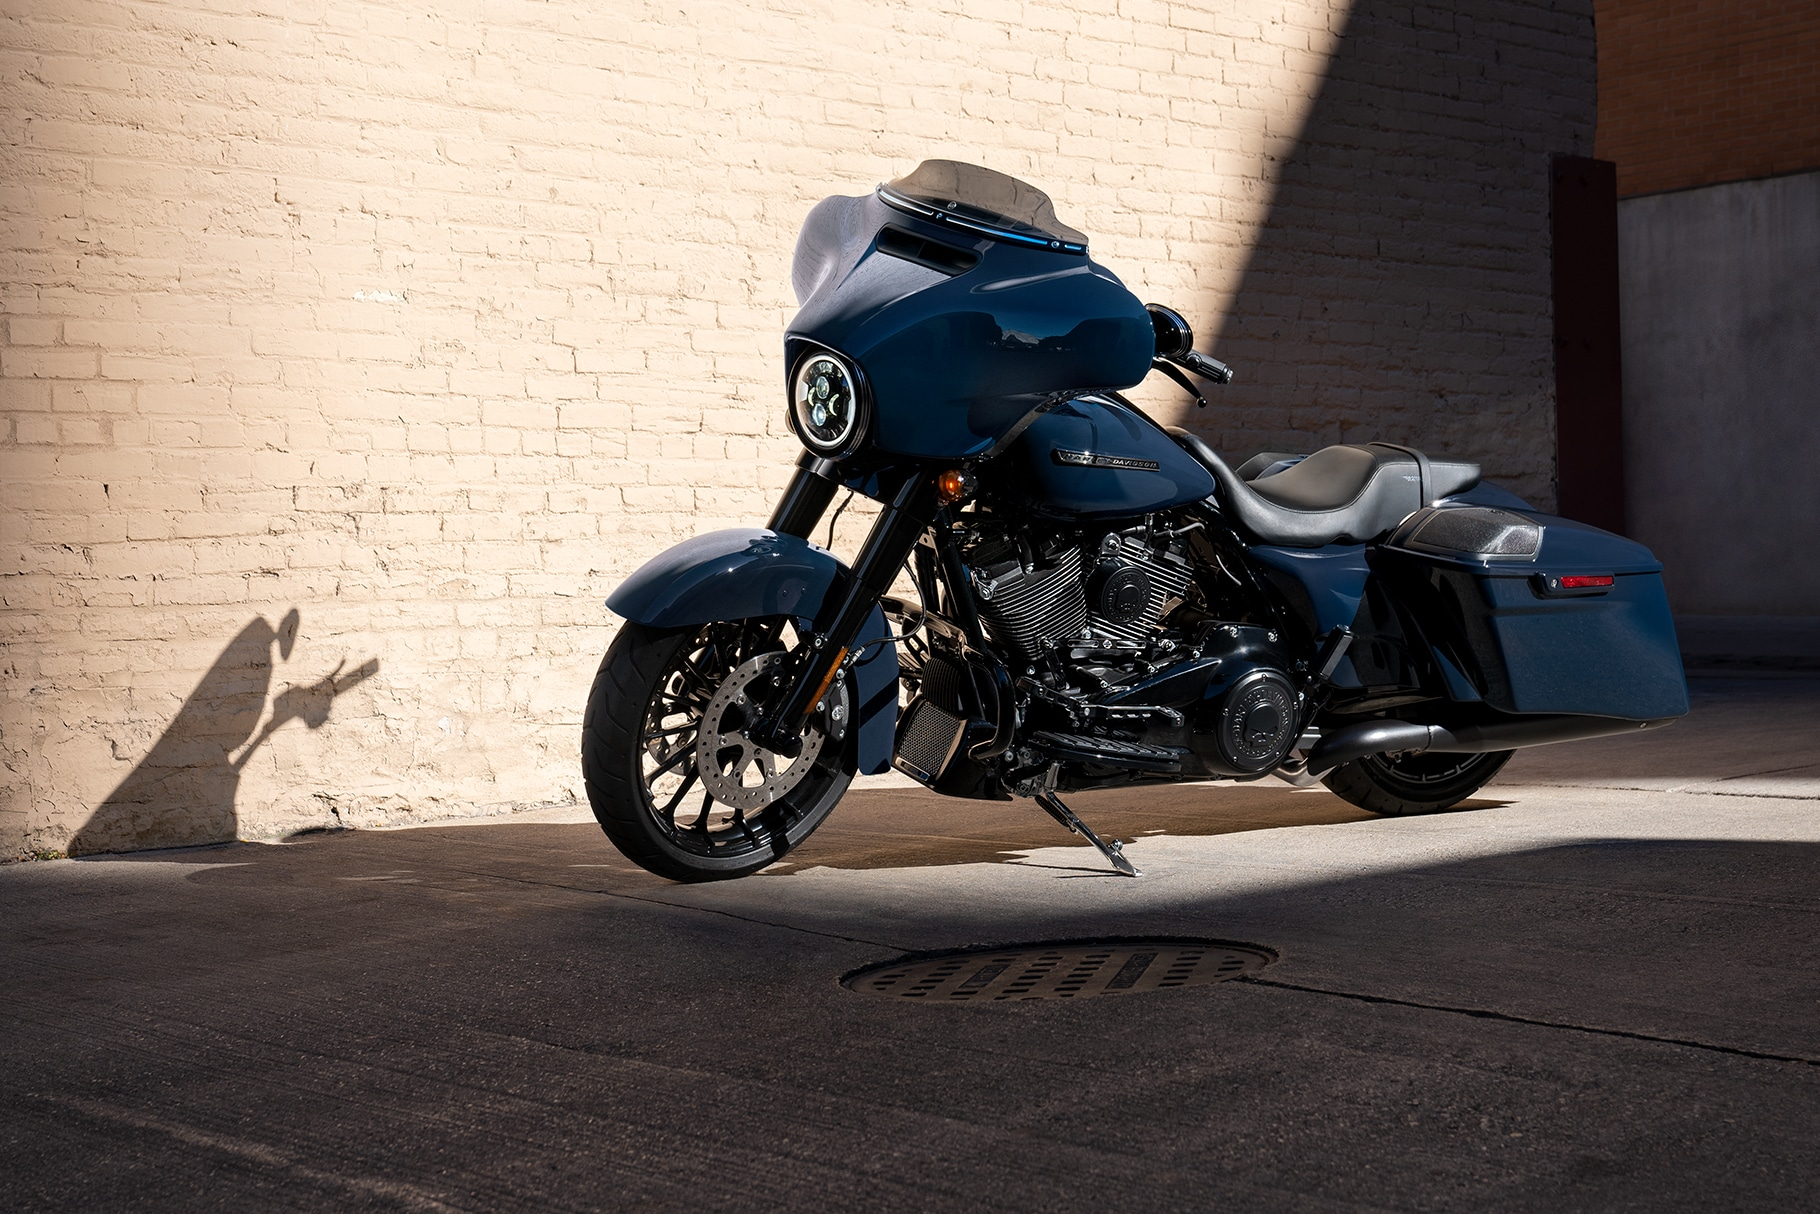 hight resolution of parked 2019 harley davidson street glide special motorcycle